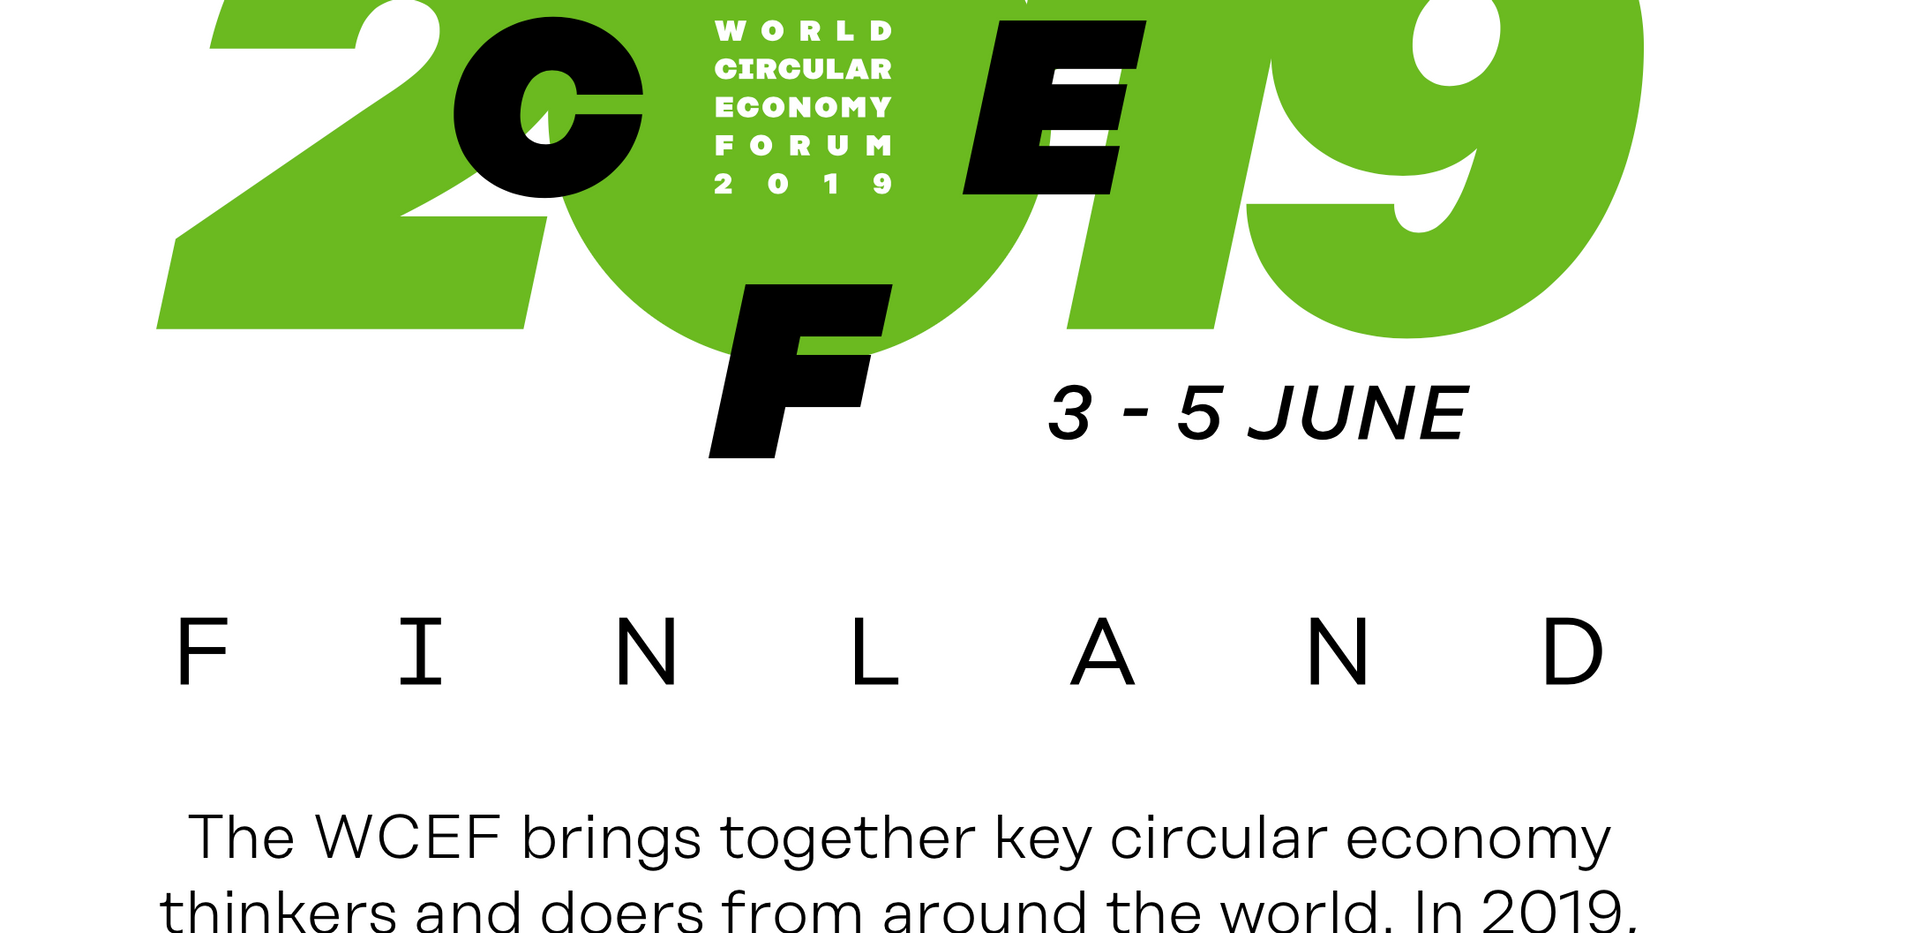 World Circular Economic Forum 2019